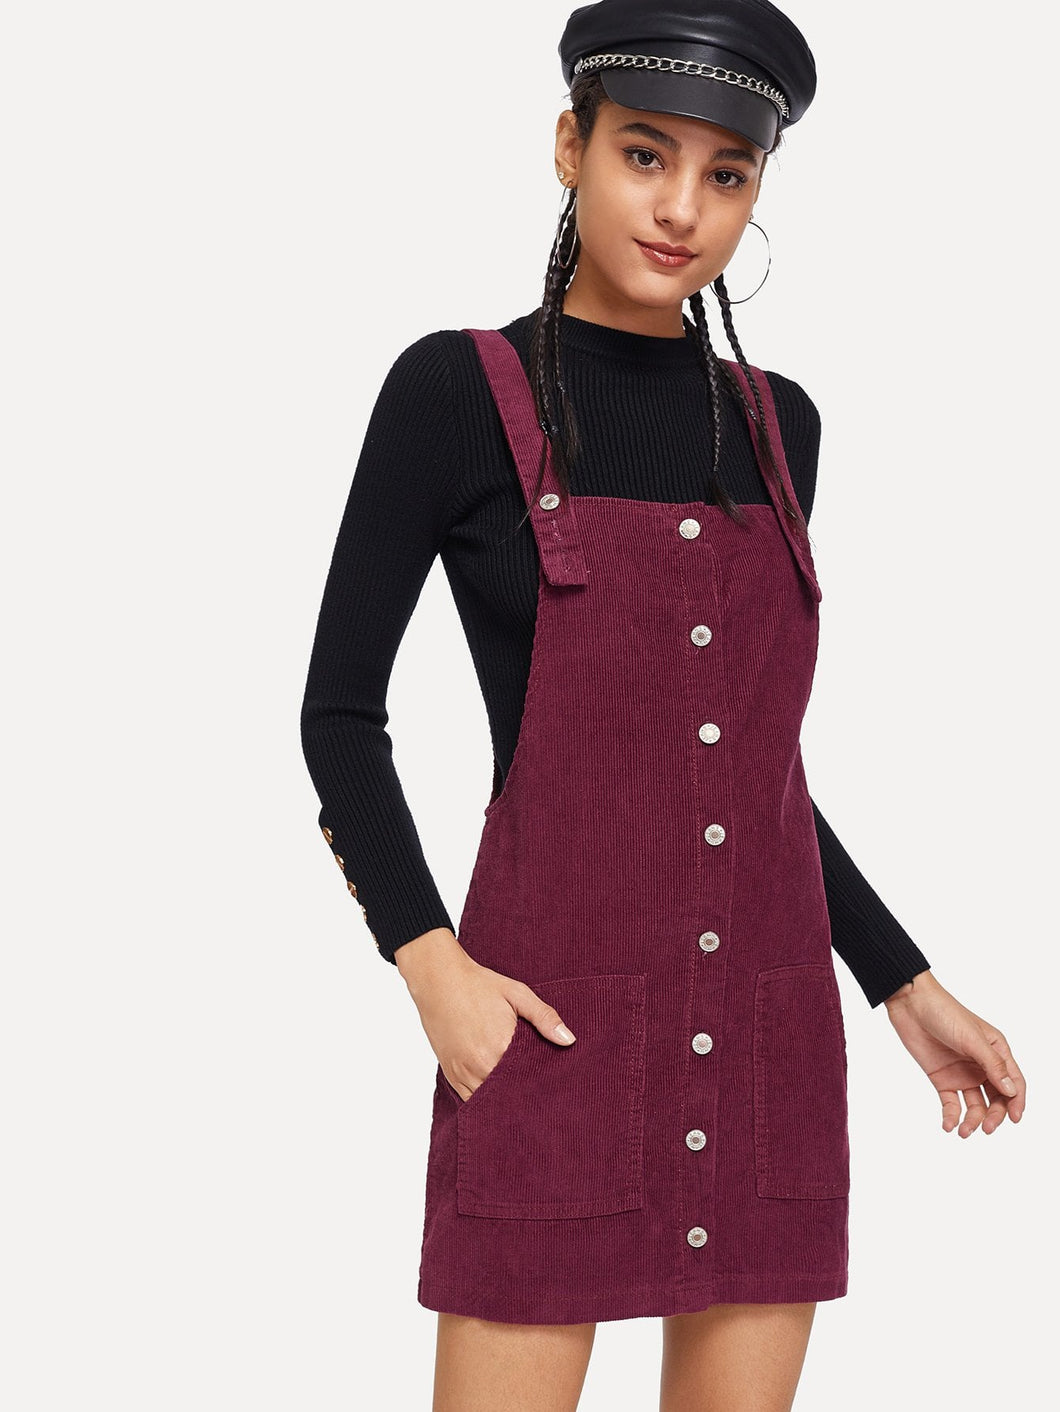 Cora Corduroy Overall Dress